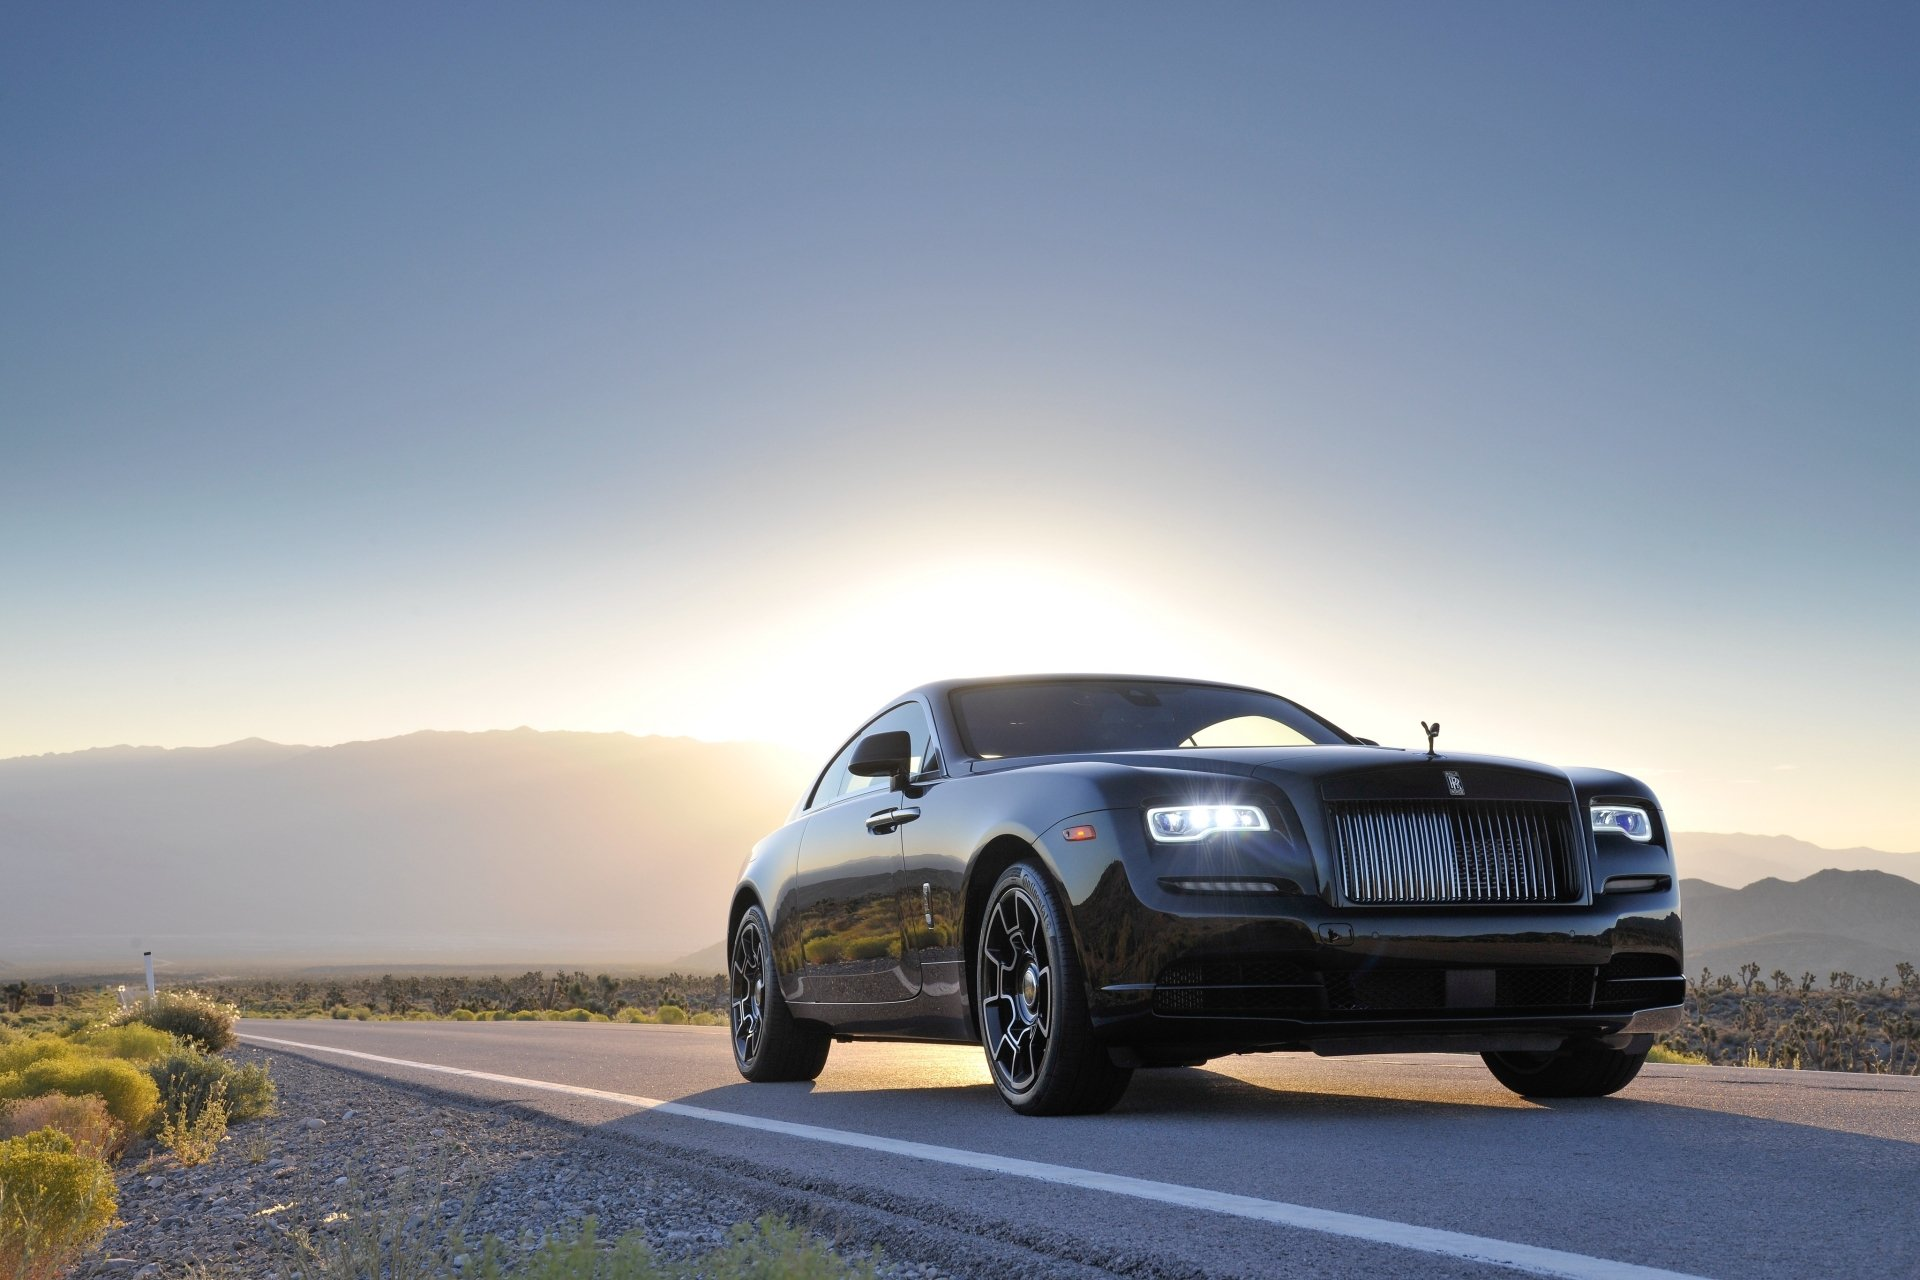 94 4k Ultra Hd Rolls Royce Wallpapers Background Images Wallpaper Abyss